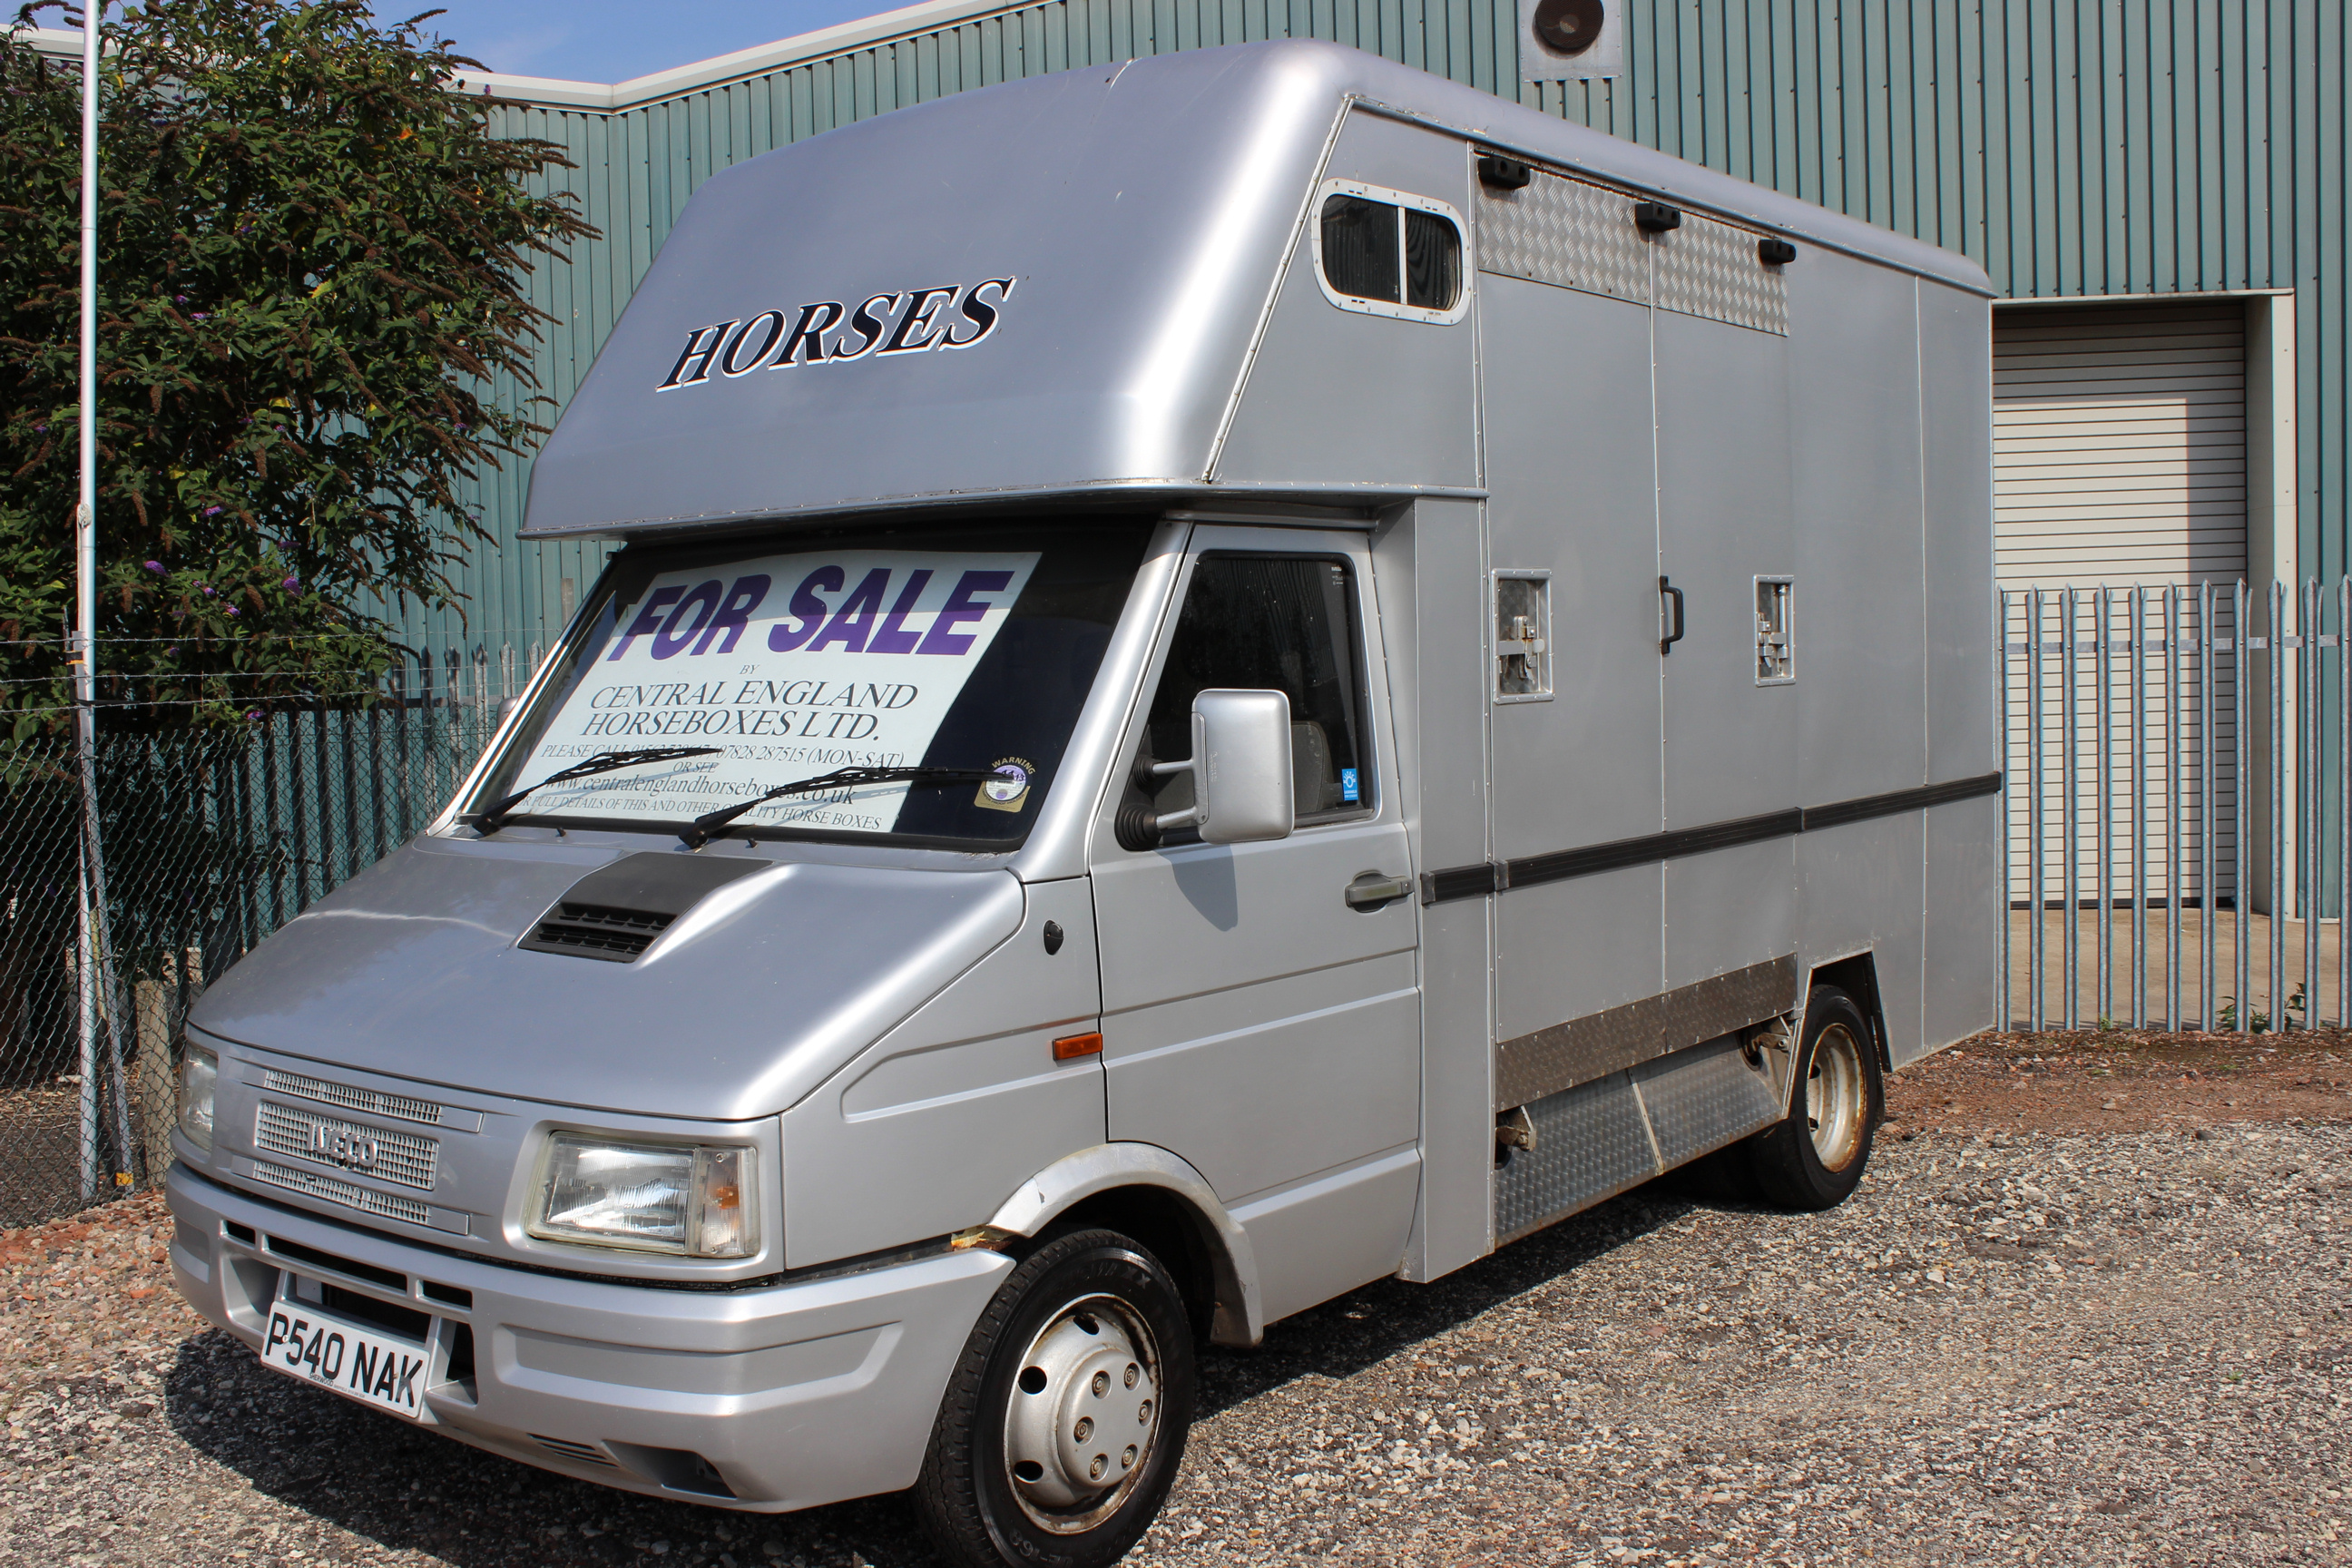 quality horsebox for sale